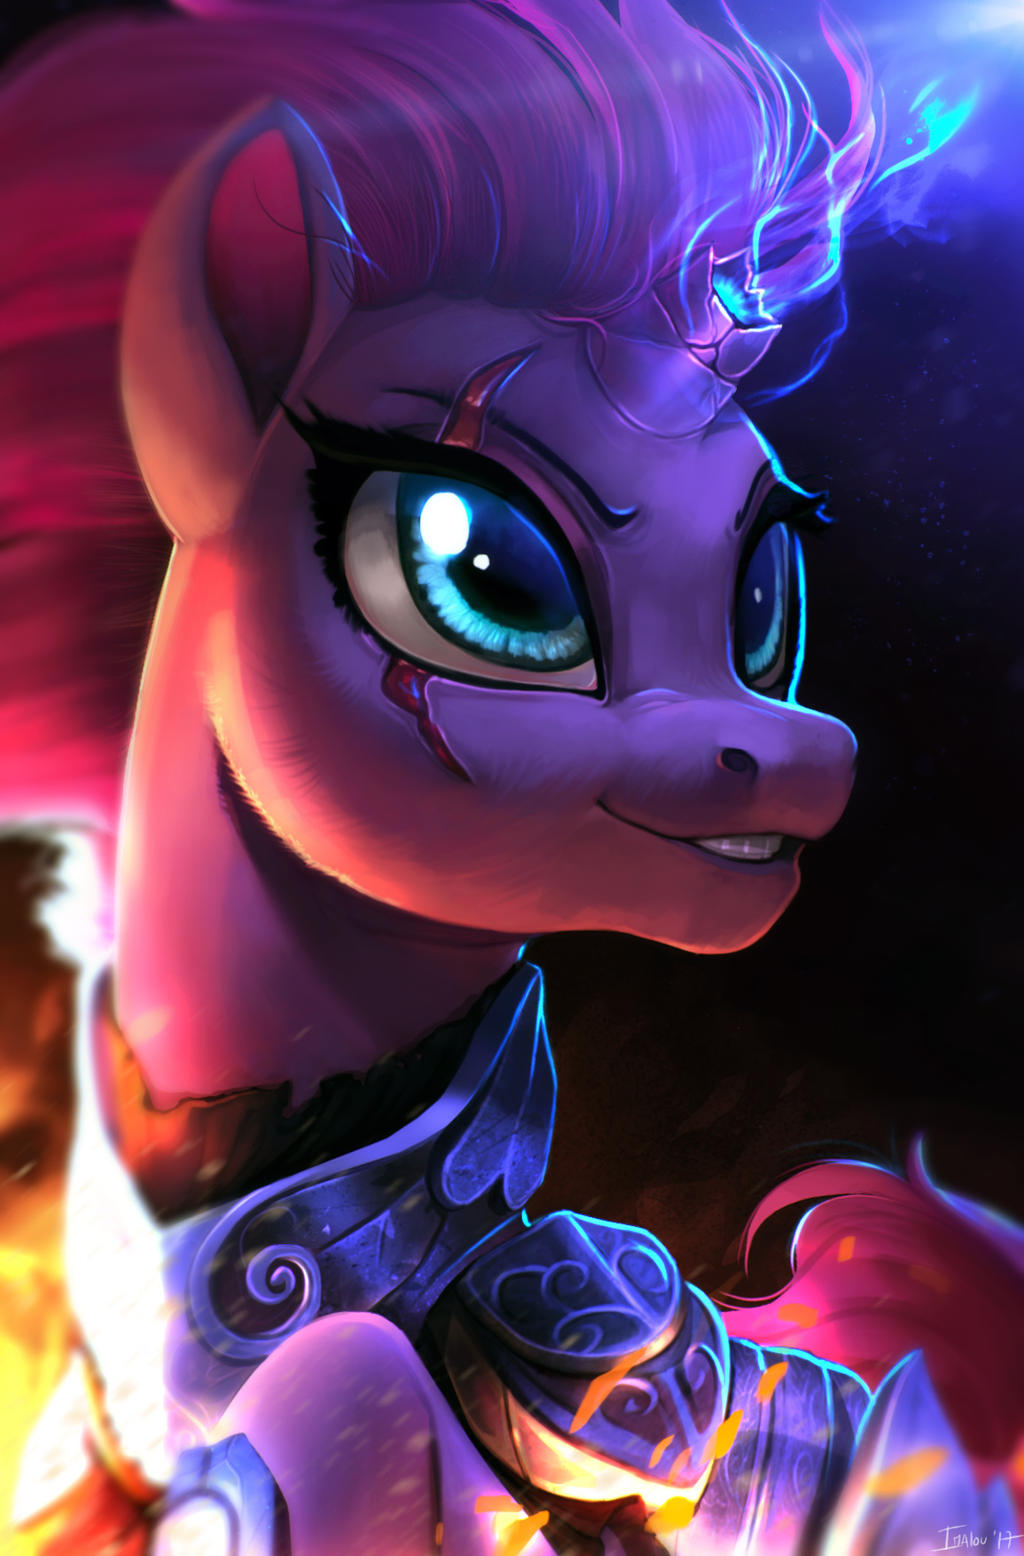 The Edgelord by Imalou